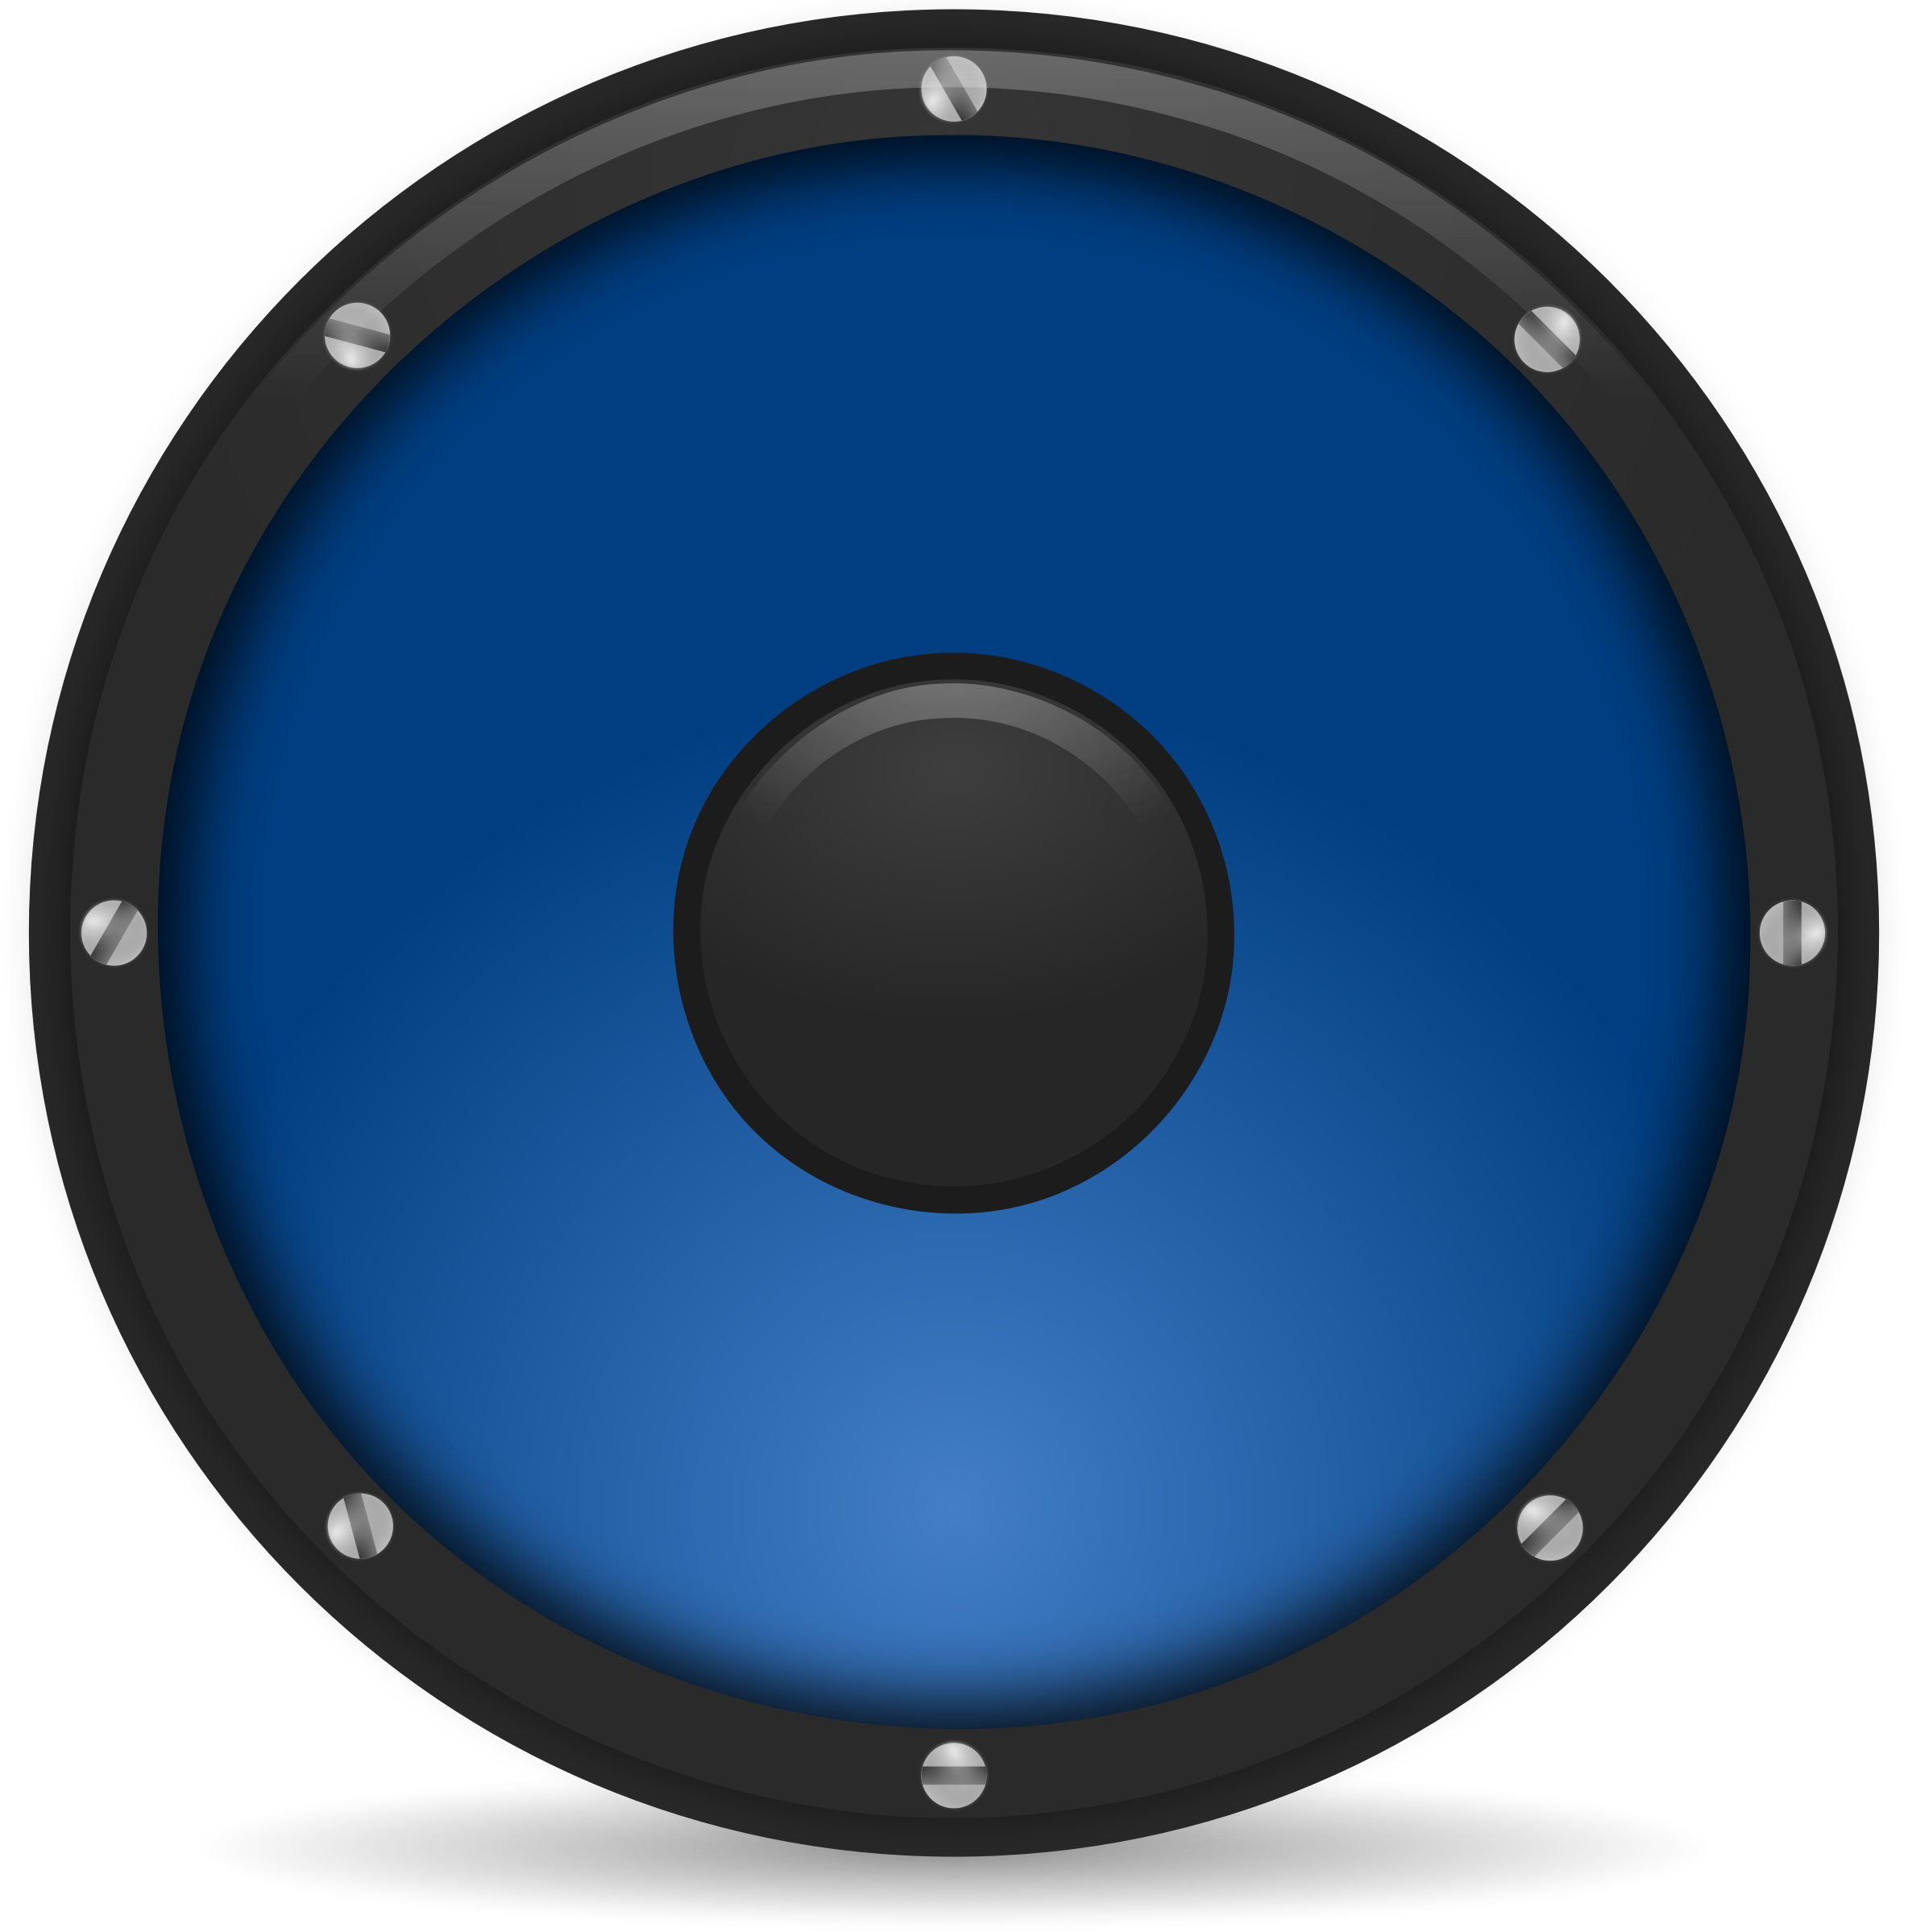 Multimedia Speaker, Volume Icon image #3975